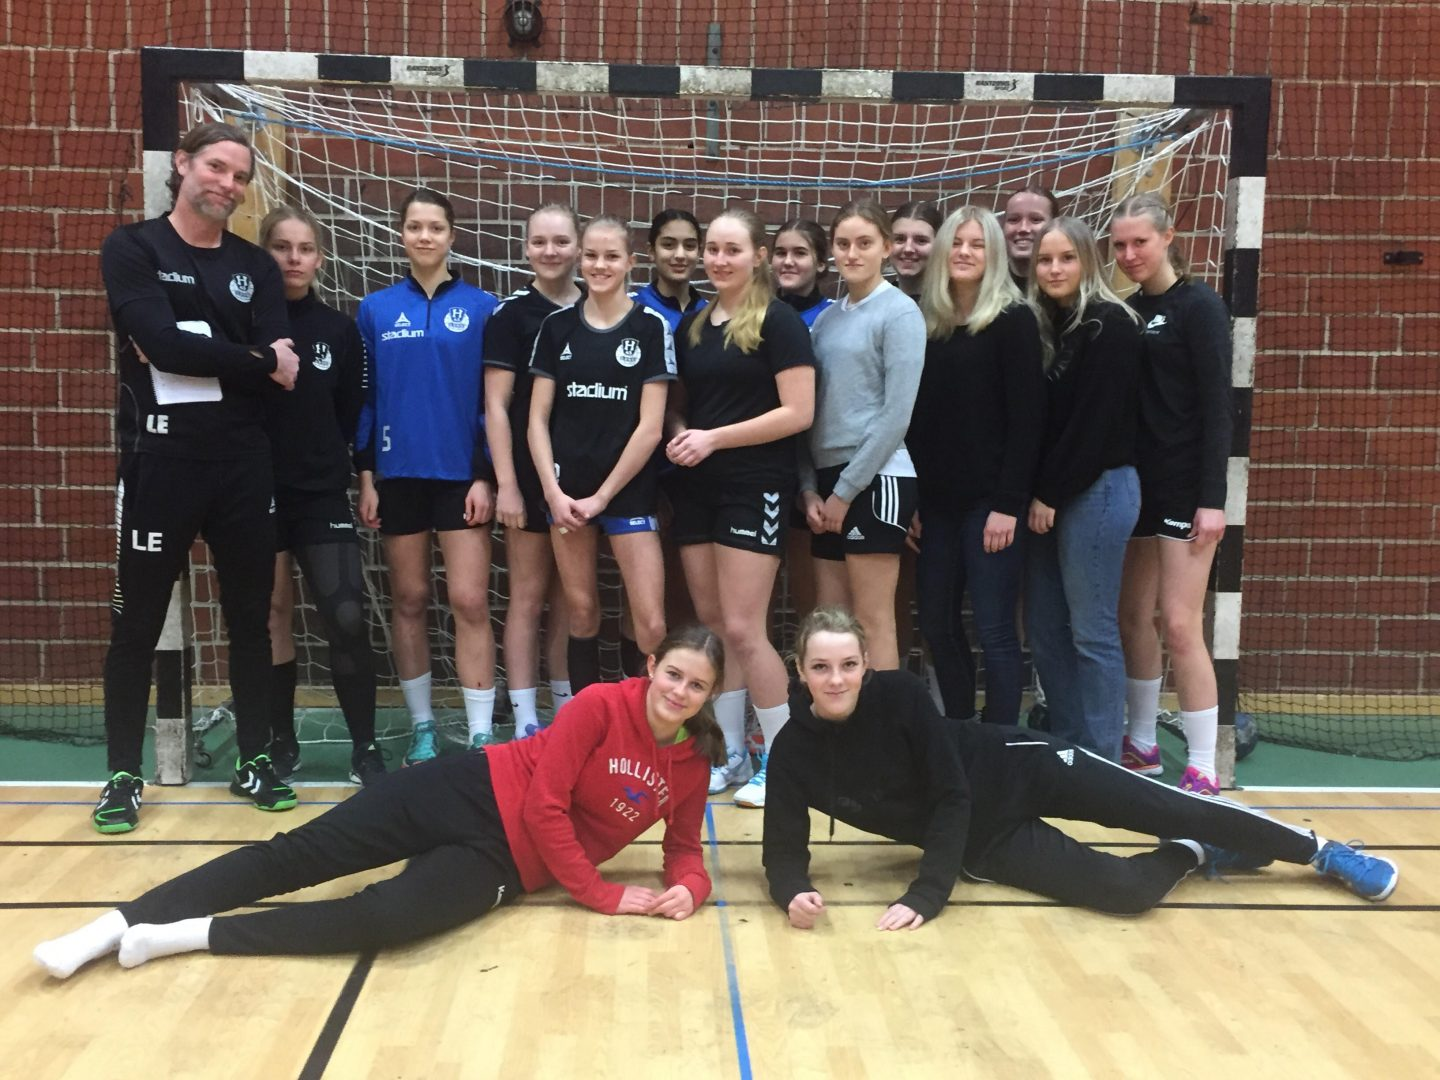 Photo of H43:s flicklag lyfter klubben mot eliten igen